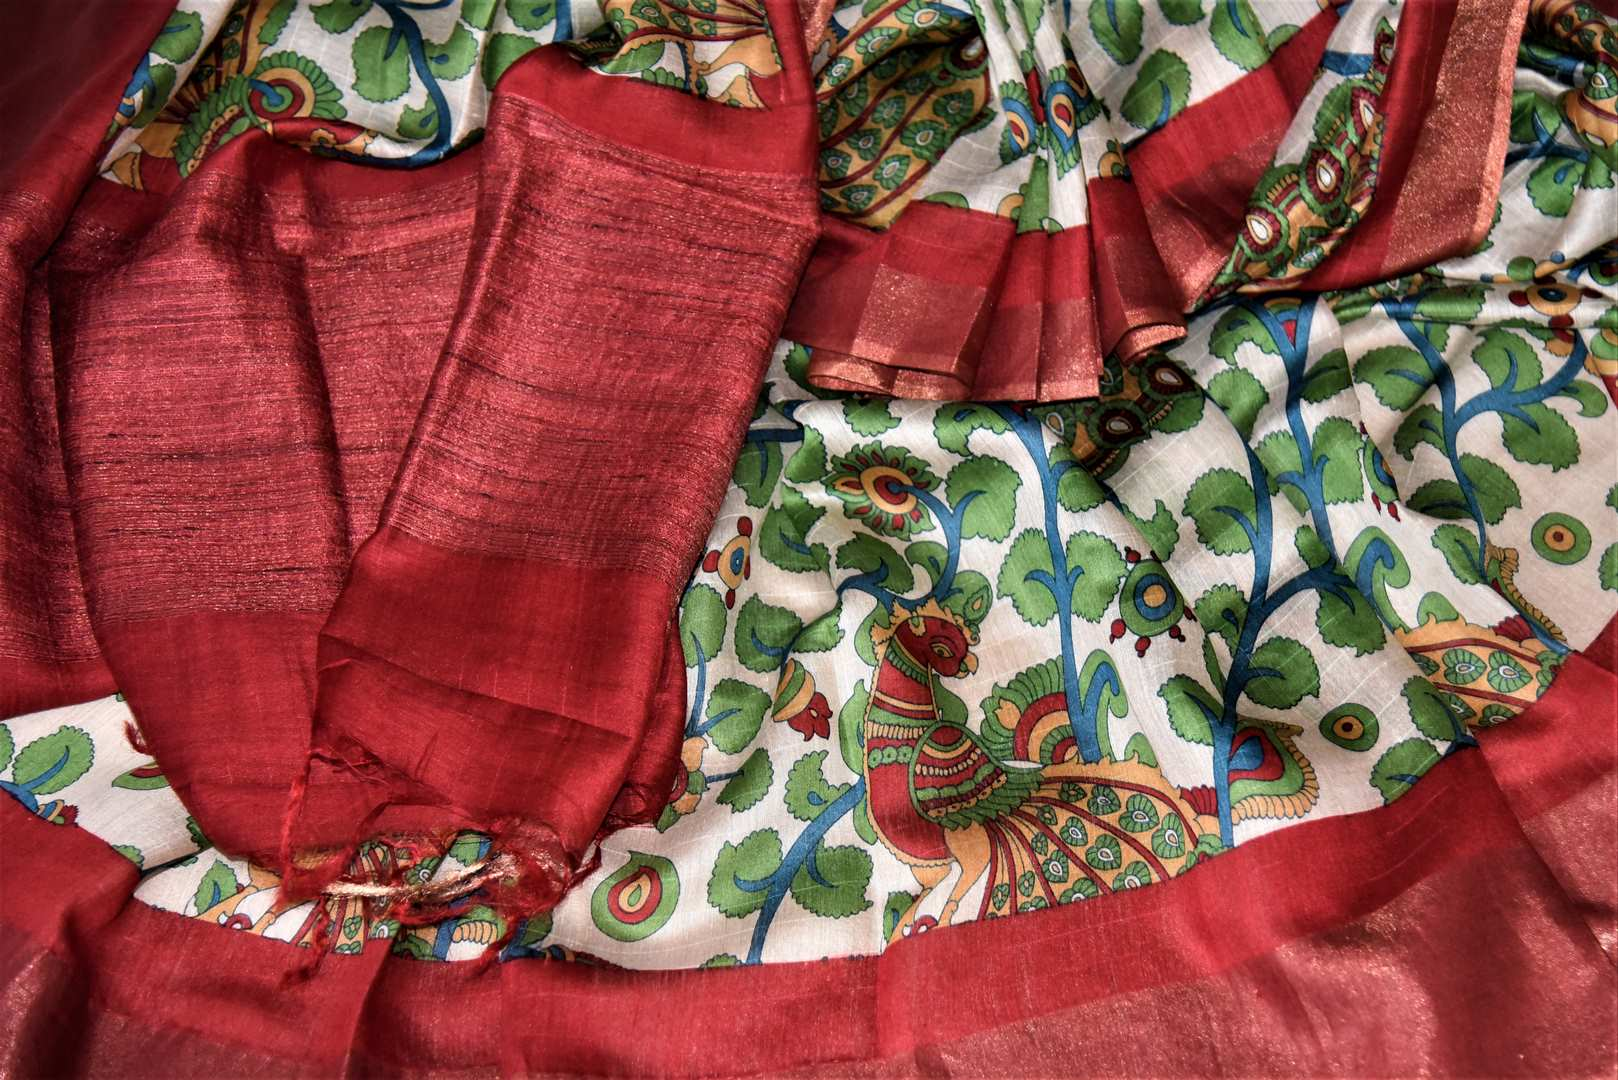 Buy elegant off-white peacock and floral print tussar silk saree online in USA with red border. Make a beautiful appearance on special occasions with exquisite Indian designer sarees, pure silk saris from Pure Elegance Indian fashion store in USA.-details